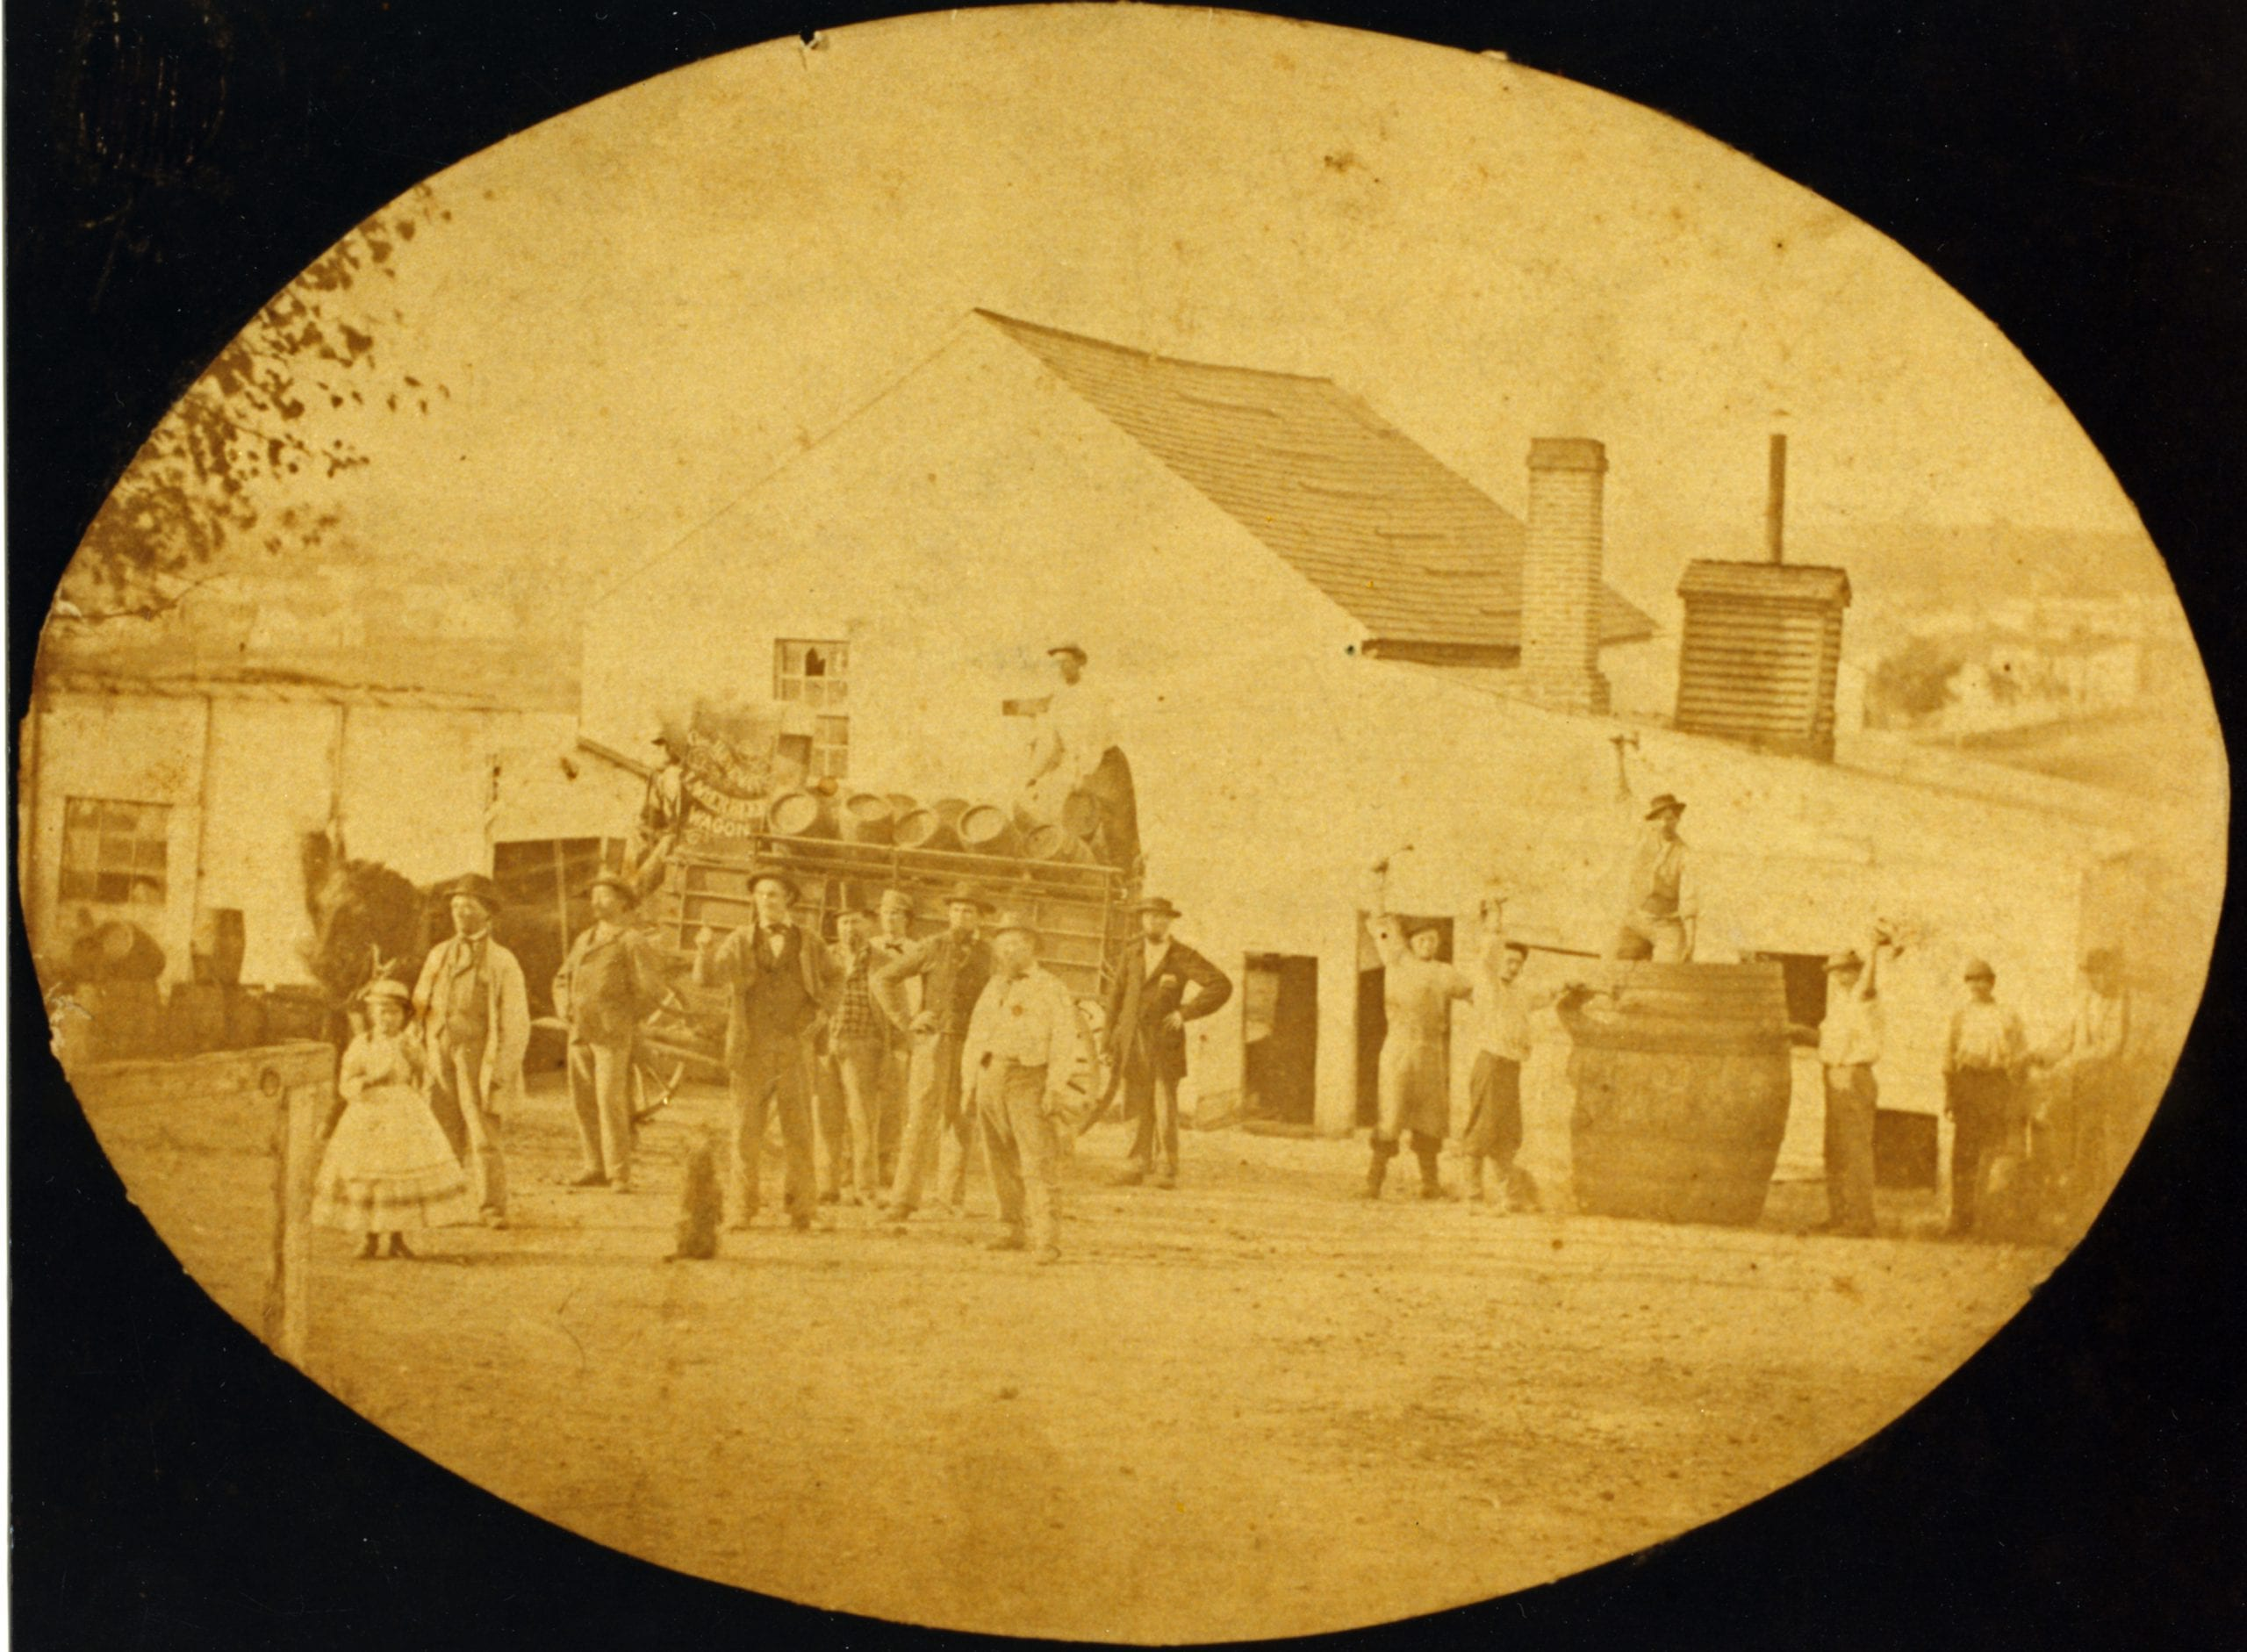 Mount Vernon Lager Beer Brewery and Pleasure Garden near the northeast corner of 4th and E Streets NE. (Juenemann Photograph Collection, HSW, ca. 1865-1870)